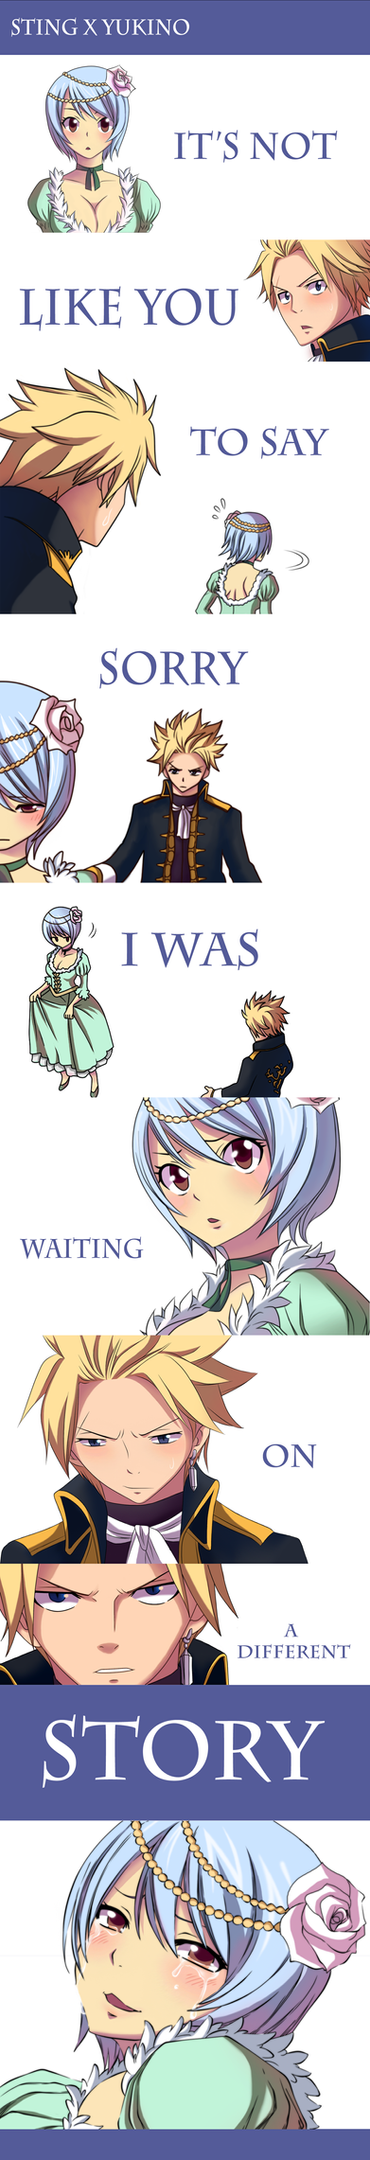 I Was Waiting  On A Different Story by Inspired-Destiny